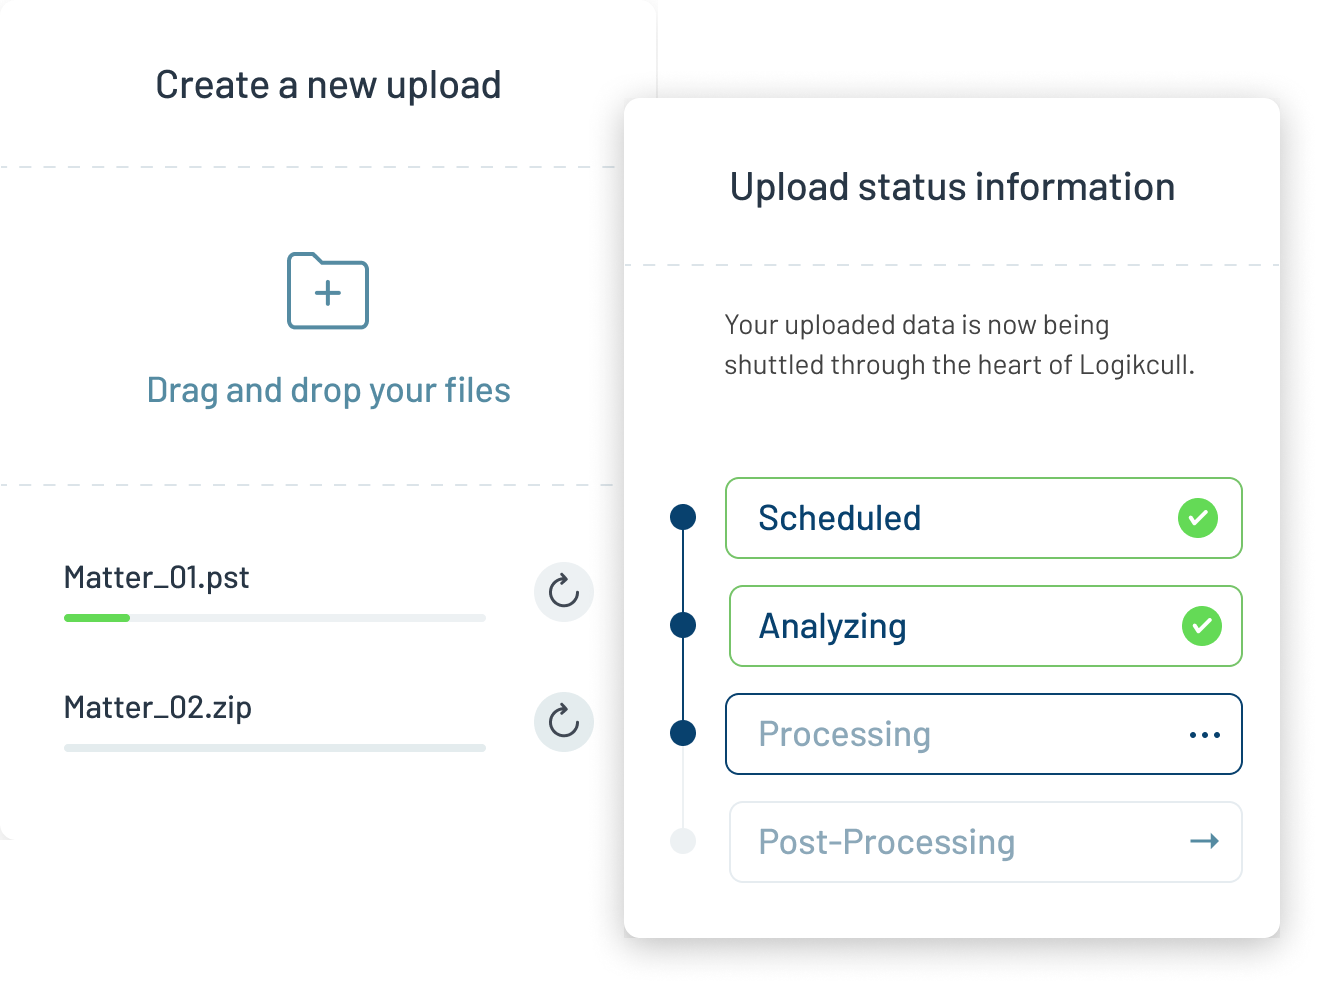 Create a new upload just by dragging and dropping your files, then let Logikcull handle the processing and organization, so you can get into your data quick